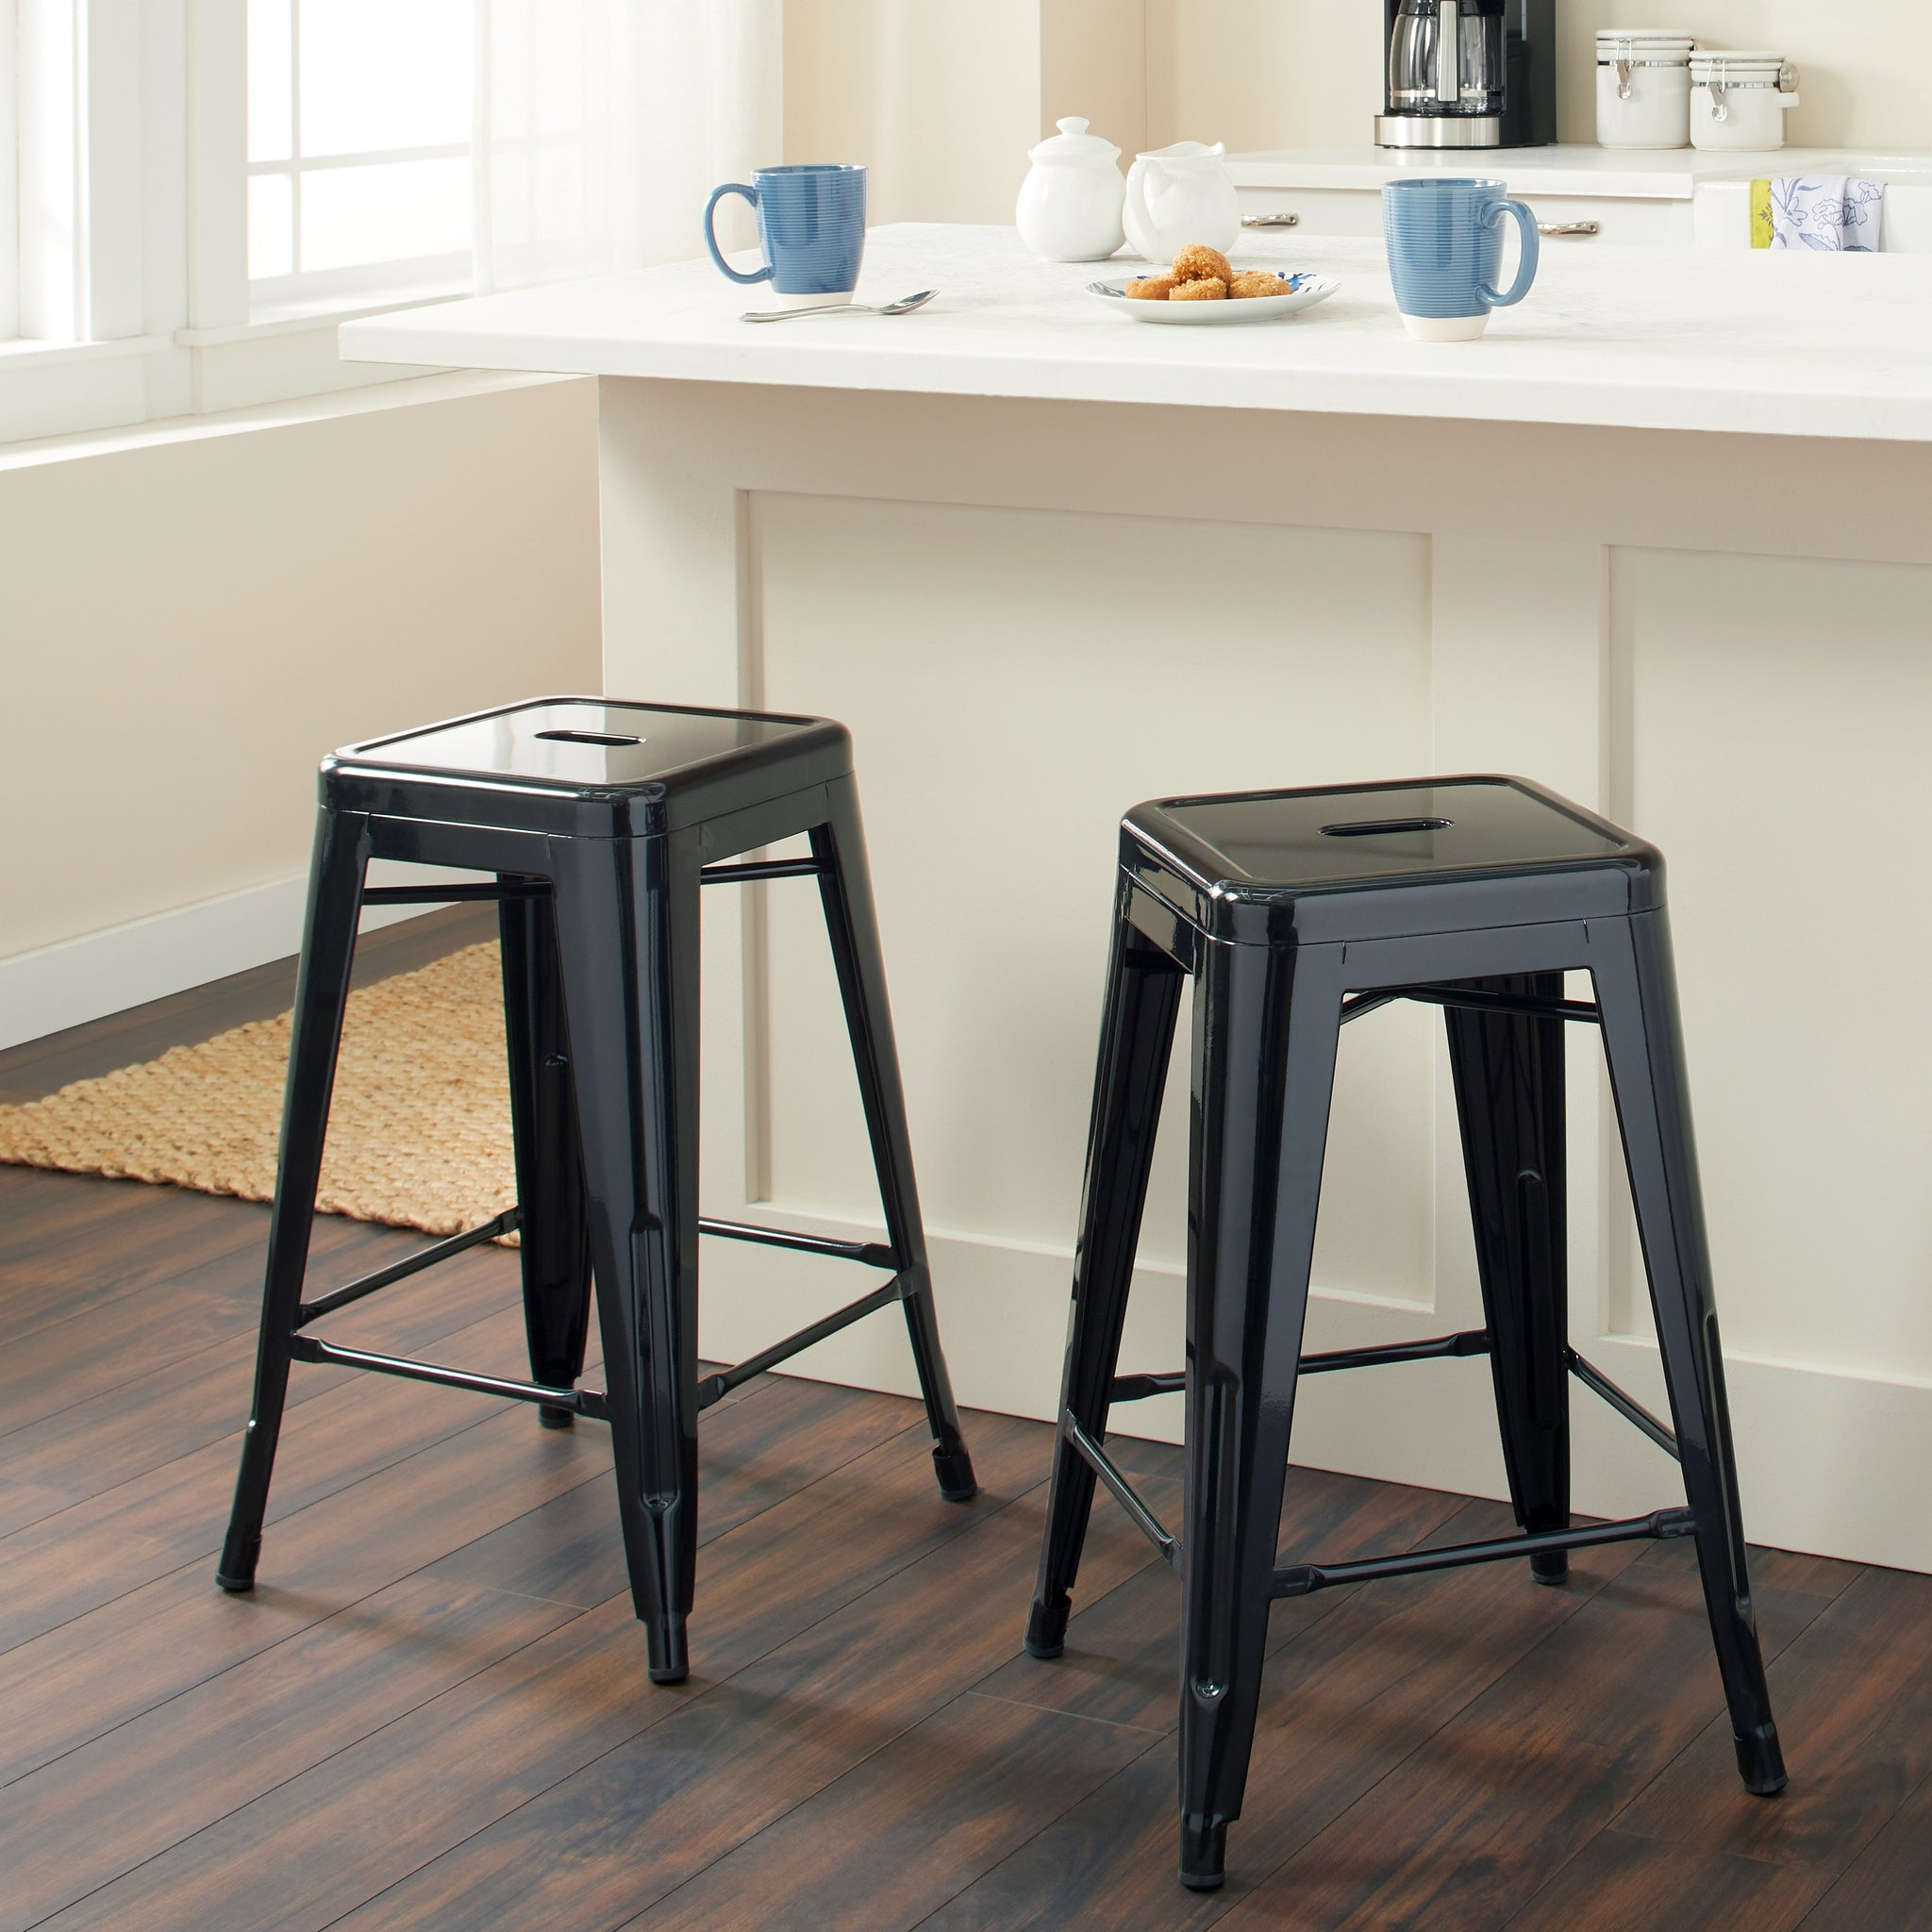 24-inch Black Metal Counter Stools (Set of 2)